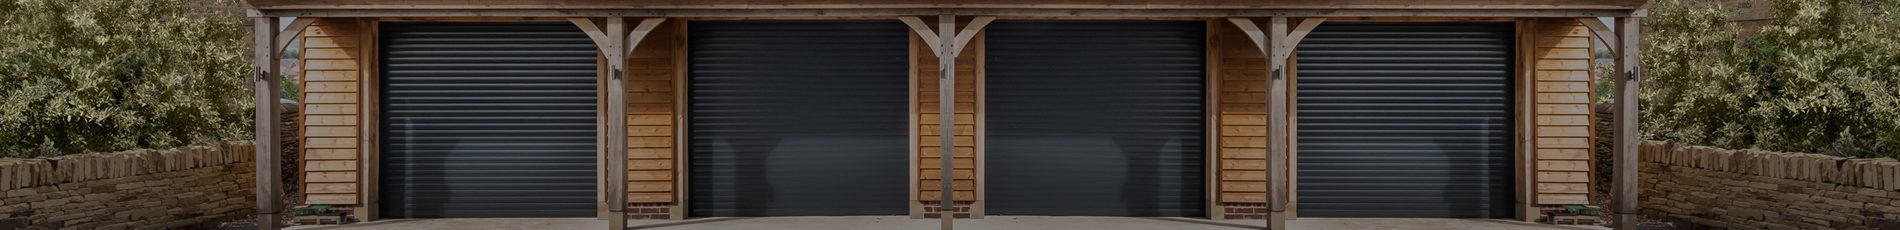 Roller Garage Doors March